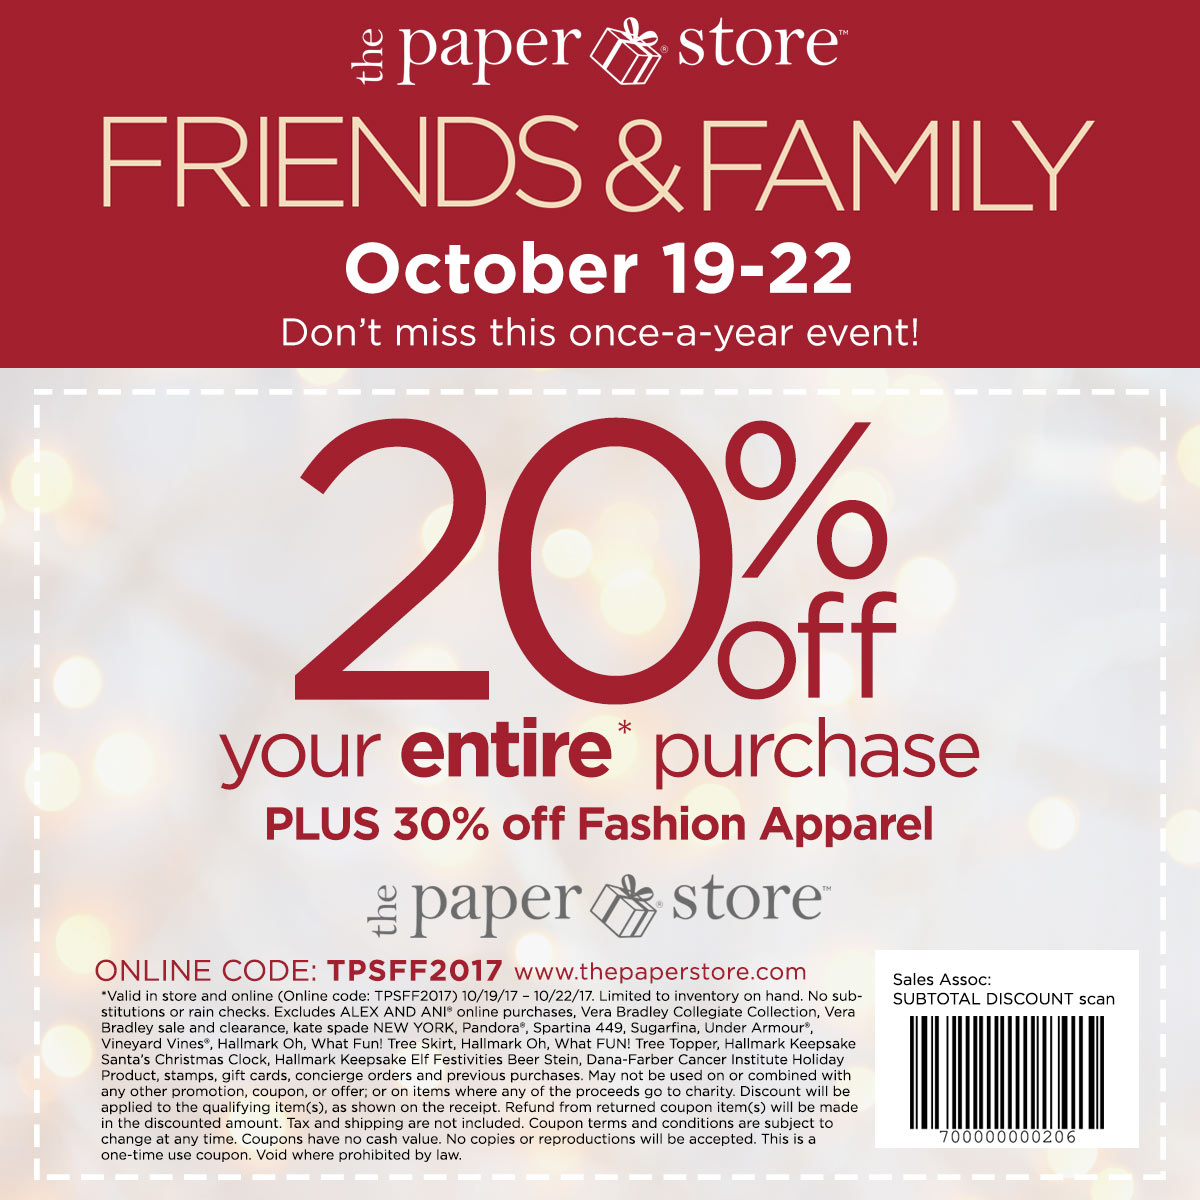 paper store coupons Sunday paper coupons has always been and still are one of the best sources for grocery coupons as much as 100 food coupons and grocery coupons are stuffed in the coupon inserts most sunday papers has.